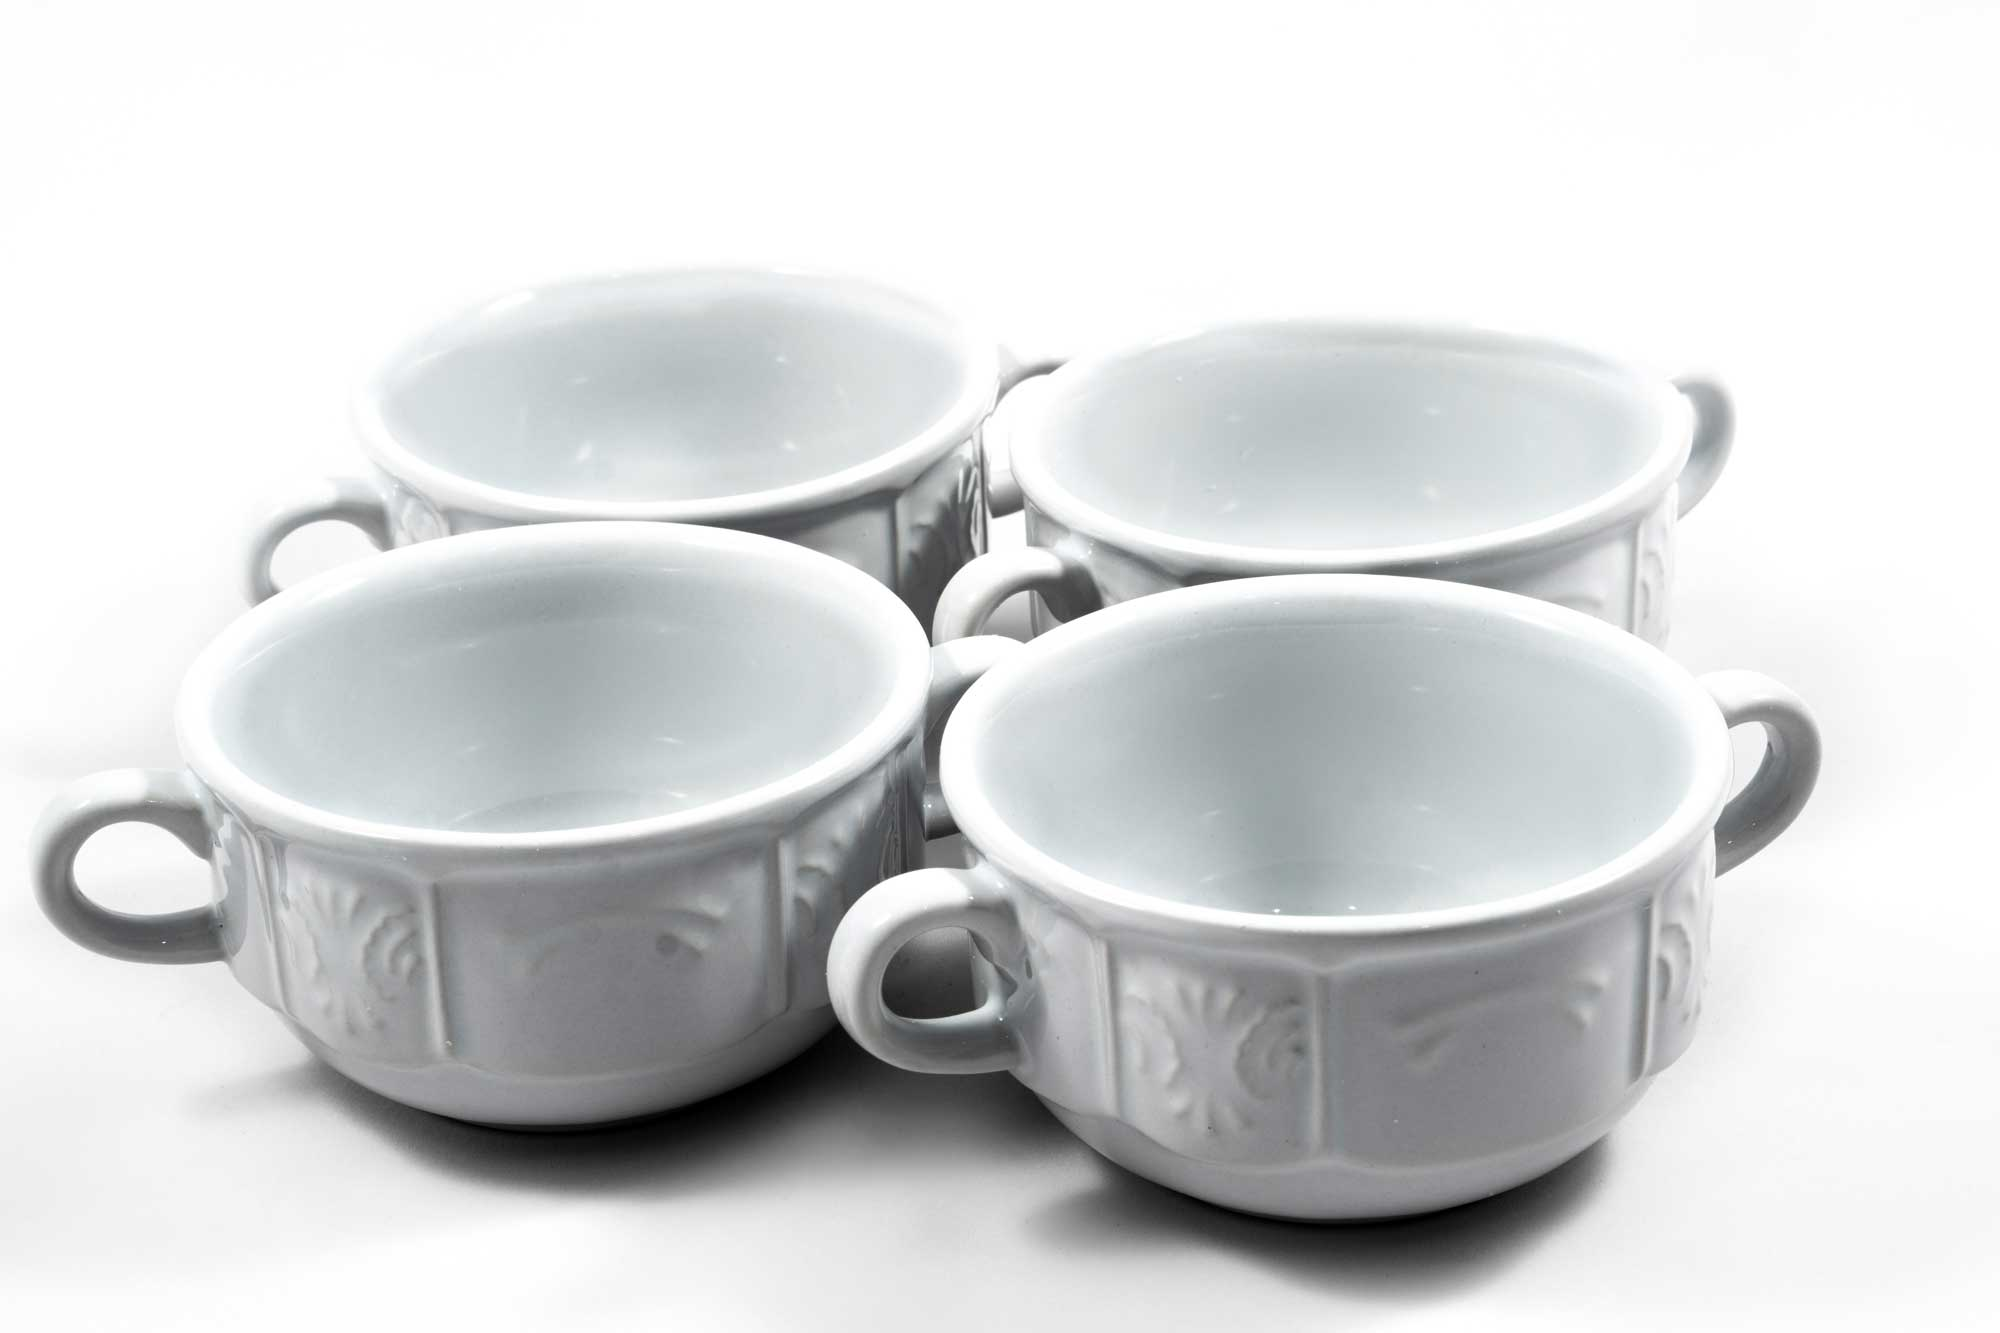 Set of 4 Classic Culinaria Double-Handled Soup Bowls